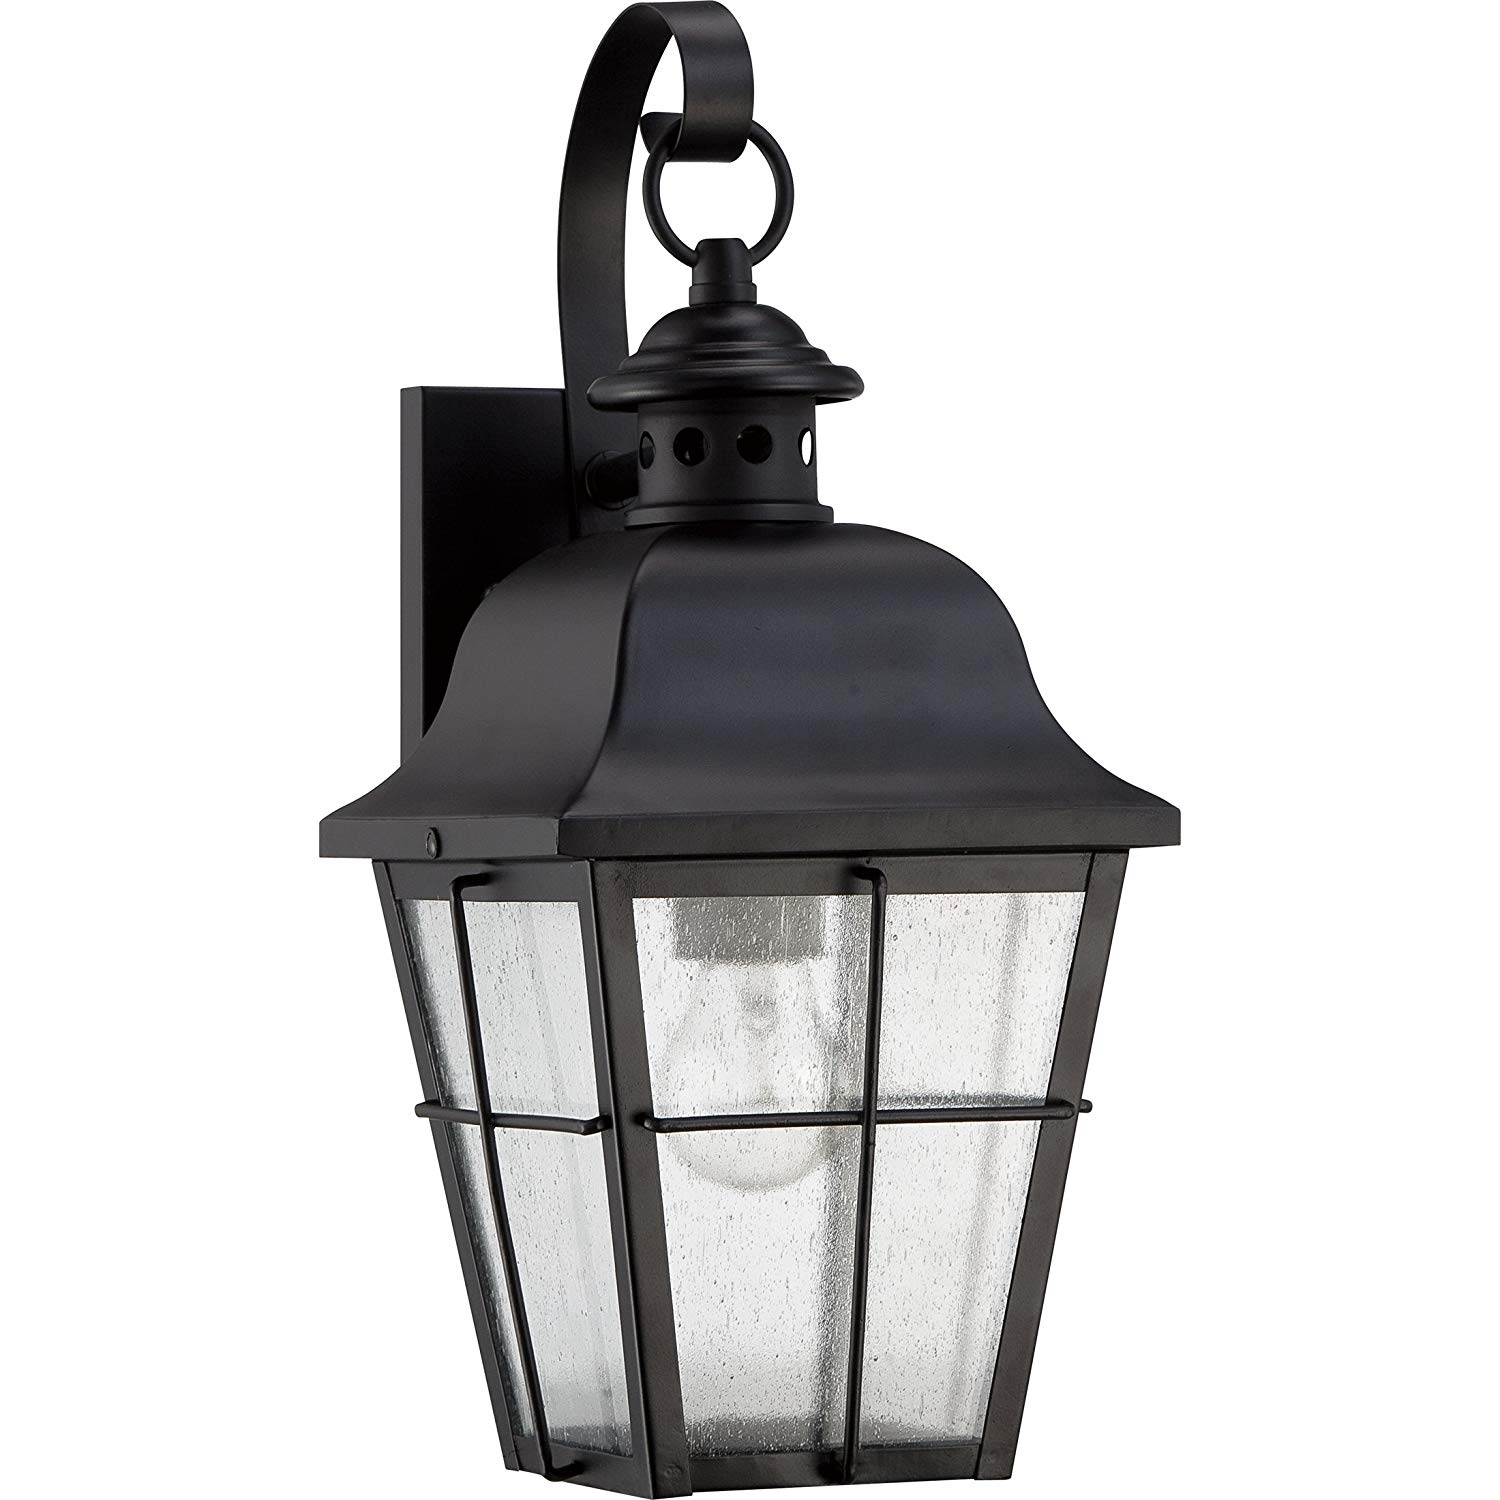 Quoizel Mhe8406K Millhouse 1-Light Outdoor Lantern, Mystic Black intended for Jumbo Outdoor Lanterns (Image 15 of 20)